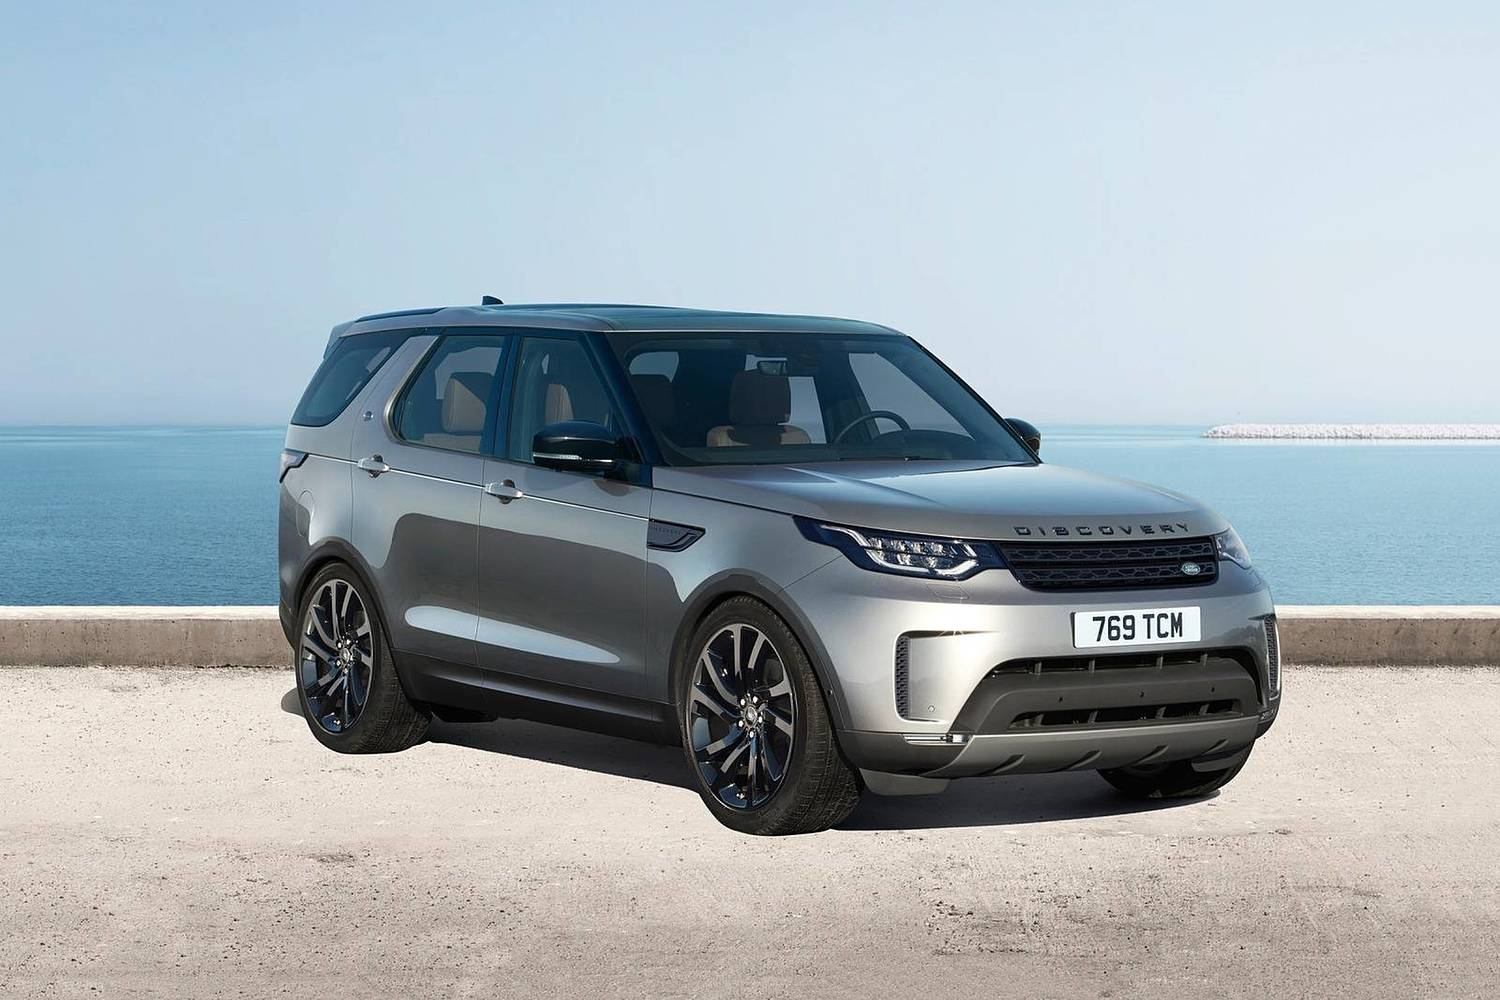 Land Rover Discovery HSE Td6 4dr SUV Exterior. Black Design Package Shown. (2017 model year shown)